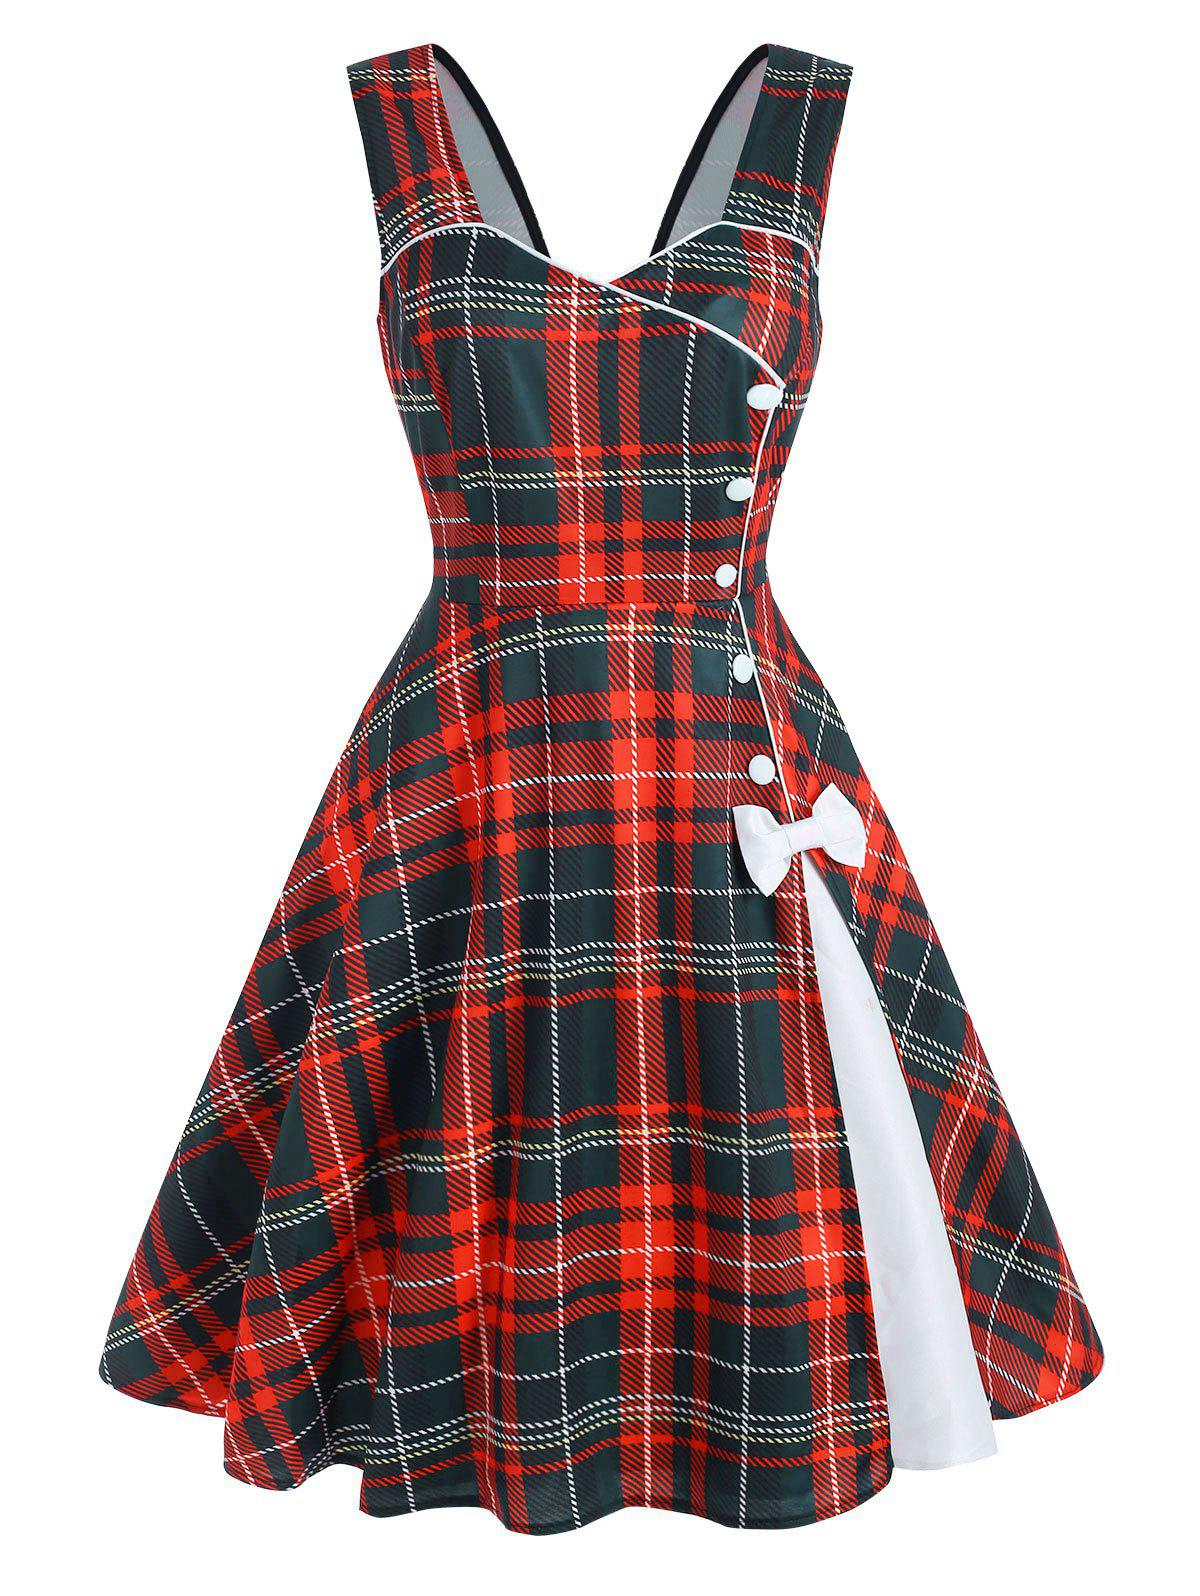 Hot Plaid Button Embellished Bowknot Sleeveless Dress